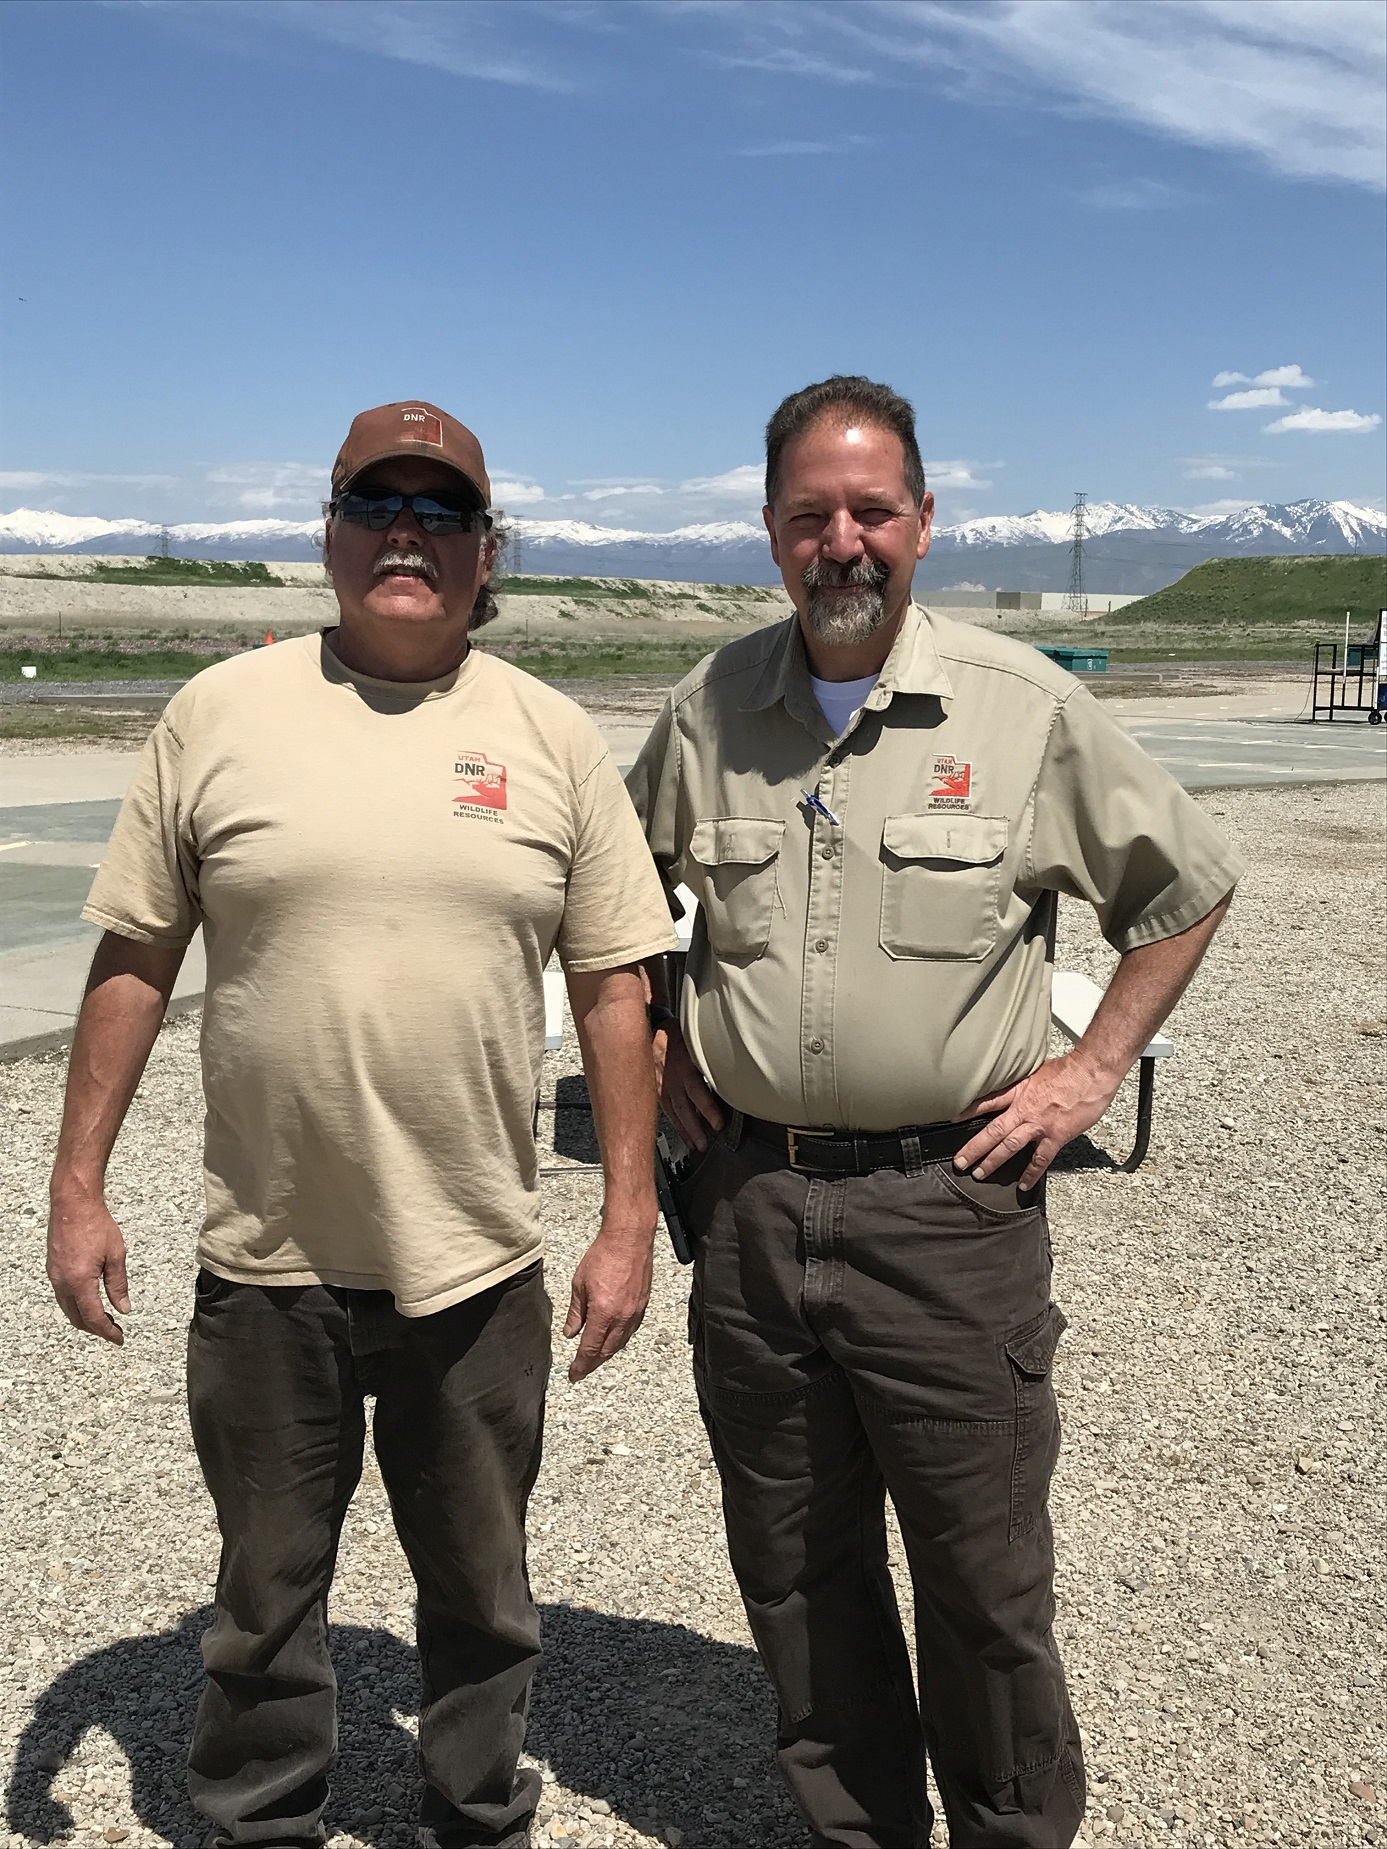 Chester Whiteman and George Sommer help to make sure ATA events at Lee Kay SC are enjoyable for shooters.